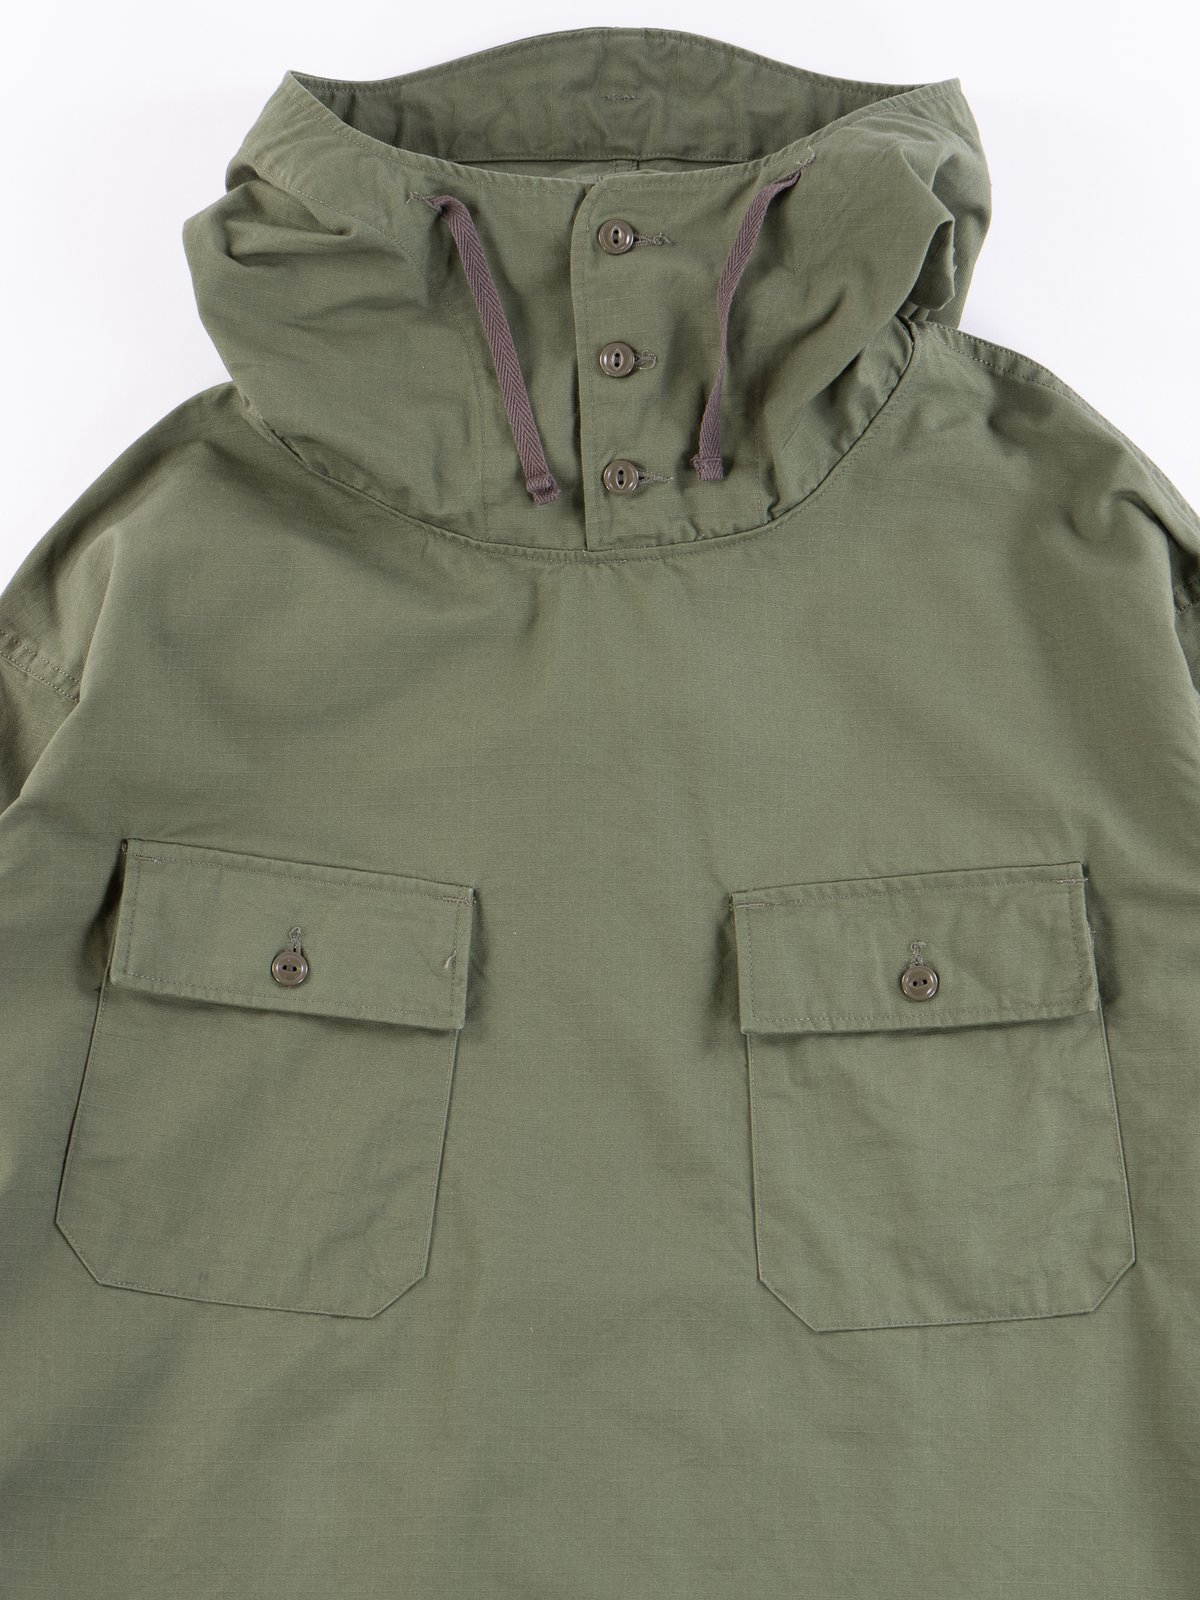 Olive Cotton Ripstop Cagoule Shirt - Image 4